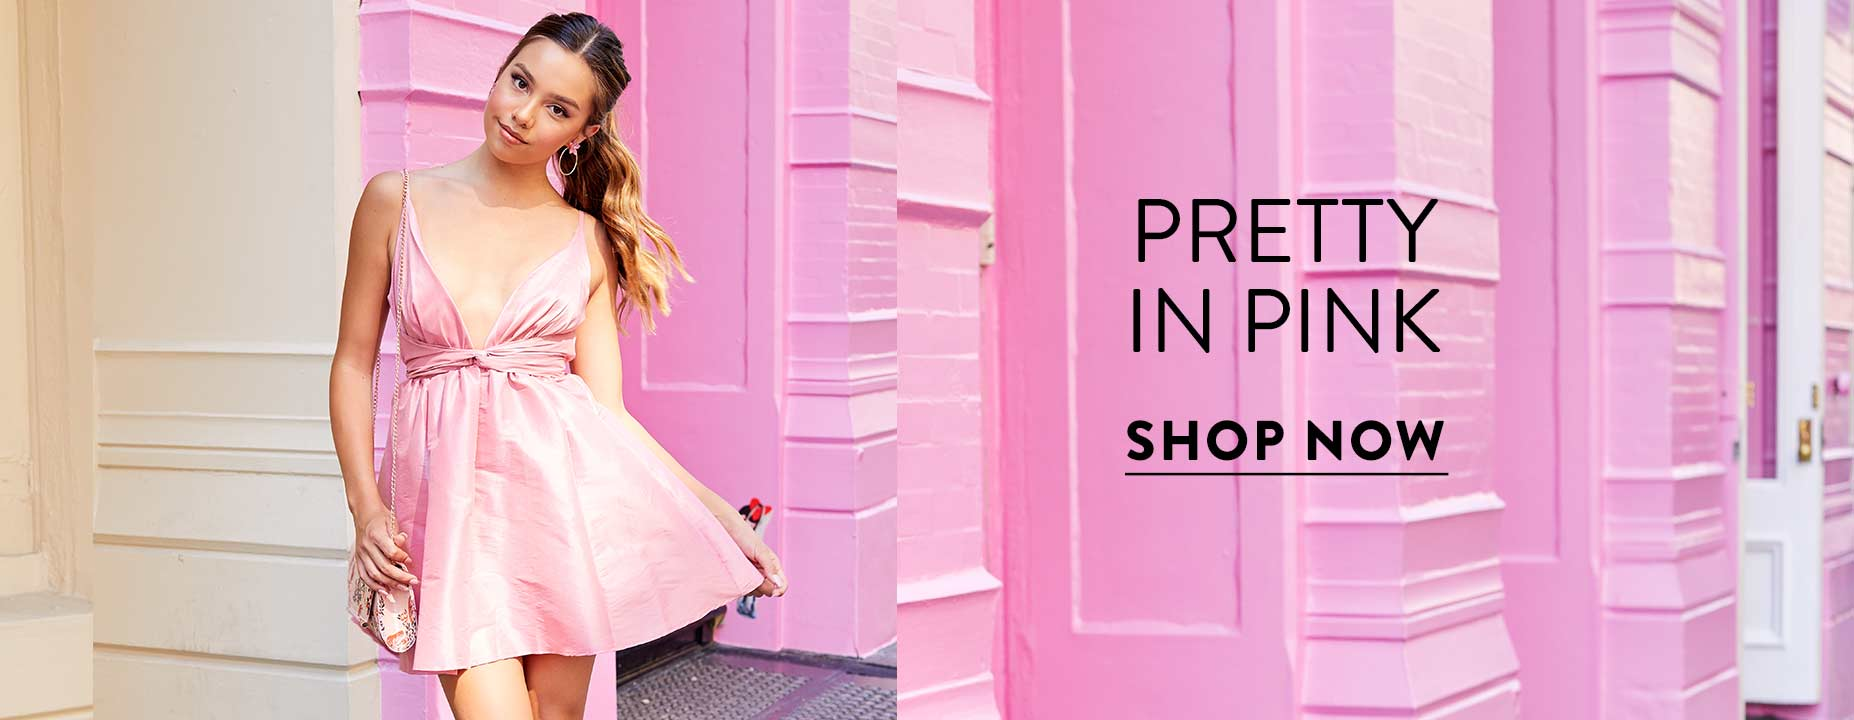 Pretty in Pink - Shop Now